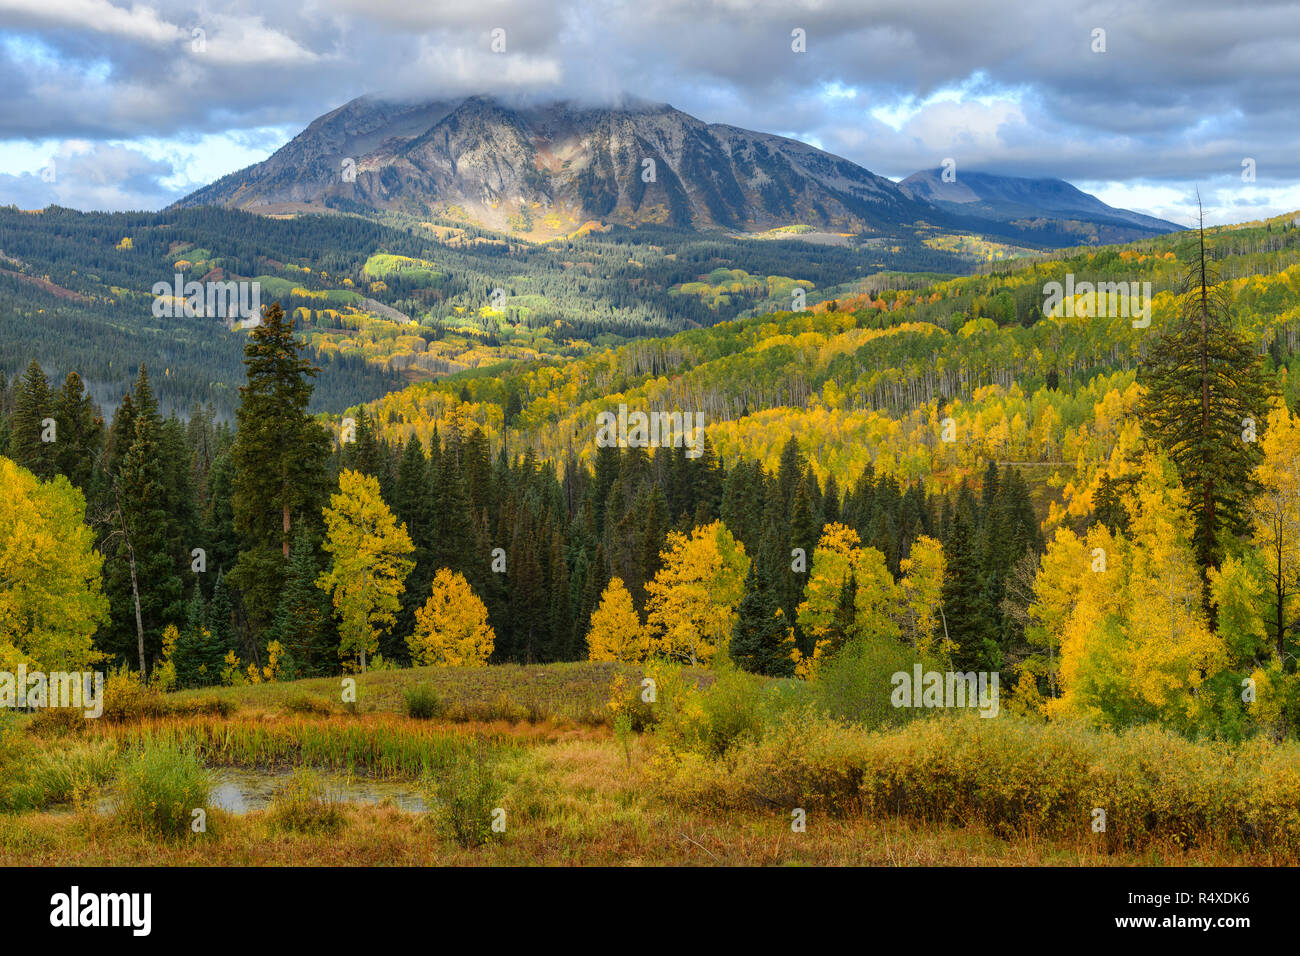 North America, American, USA, Rocky Mountains, Colorado, Crested Butte, Gunnison National Forest, Kebler Pass - Stock Image